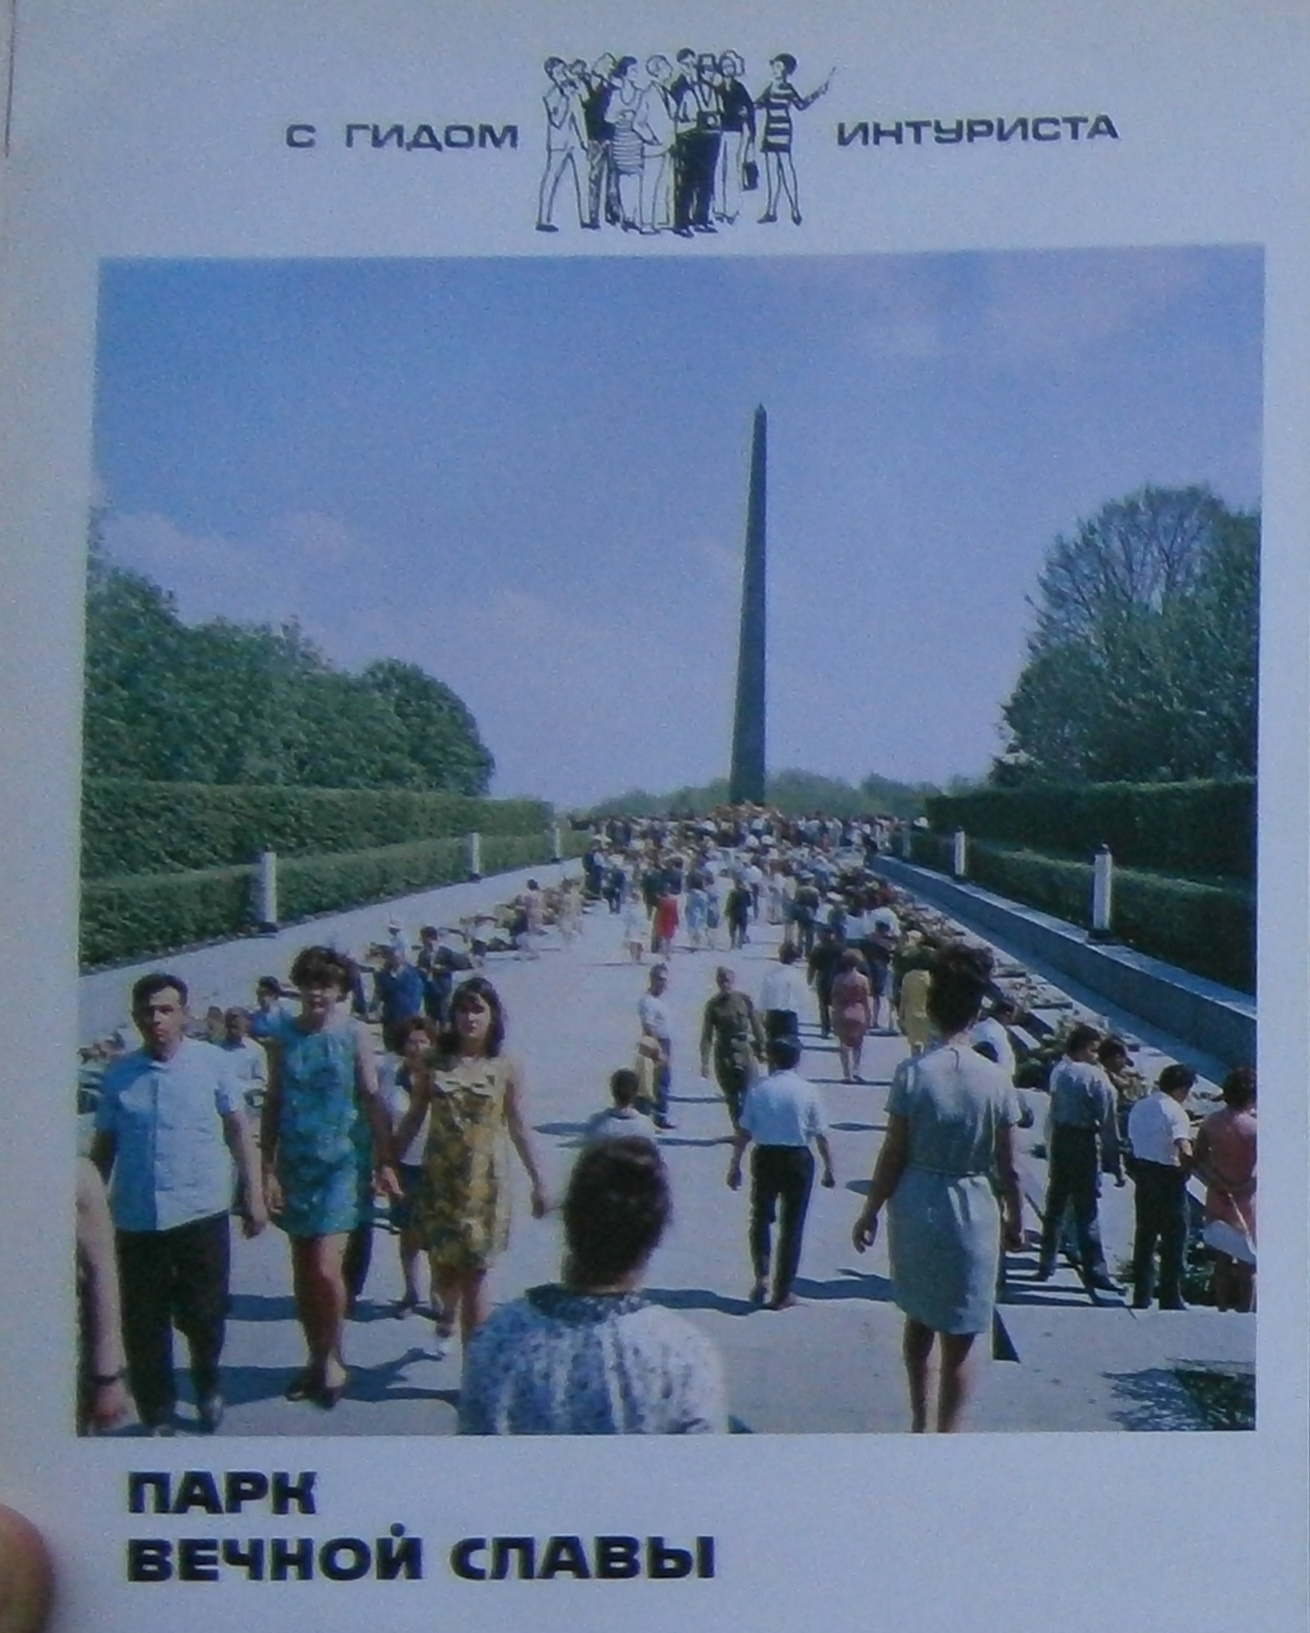 Holy Places and Leisure Spaces: World War II Memorial Sites as International Tourist Destination in the USSR